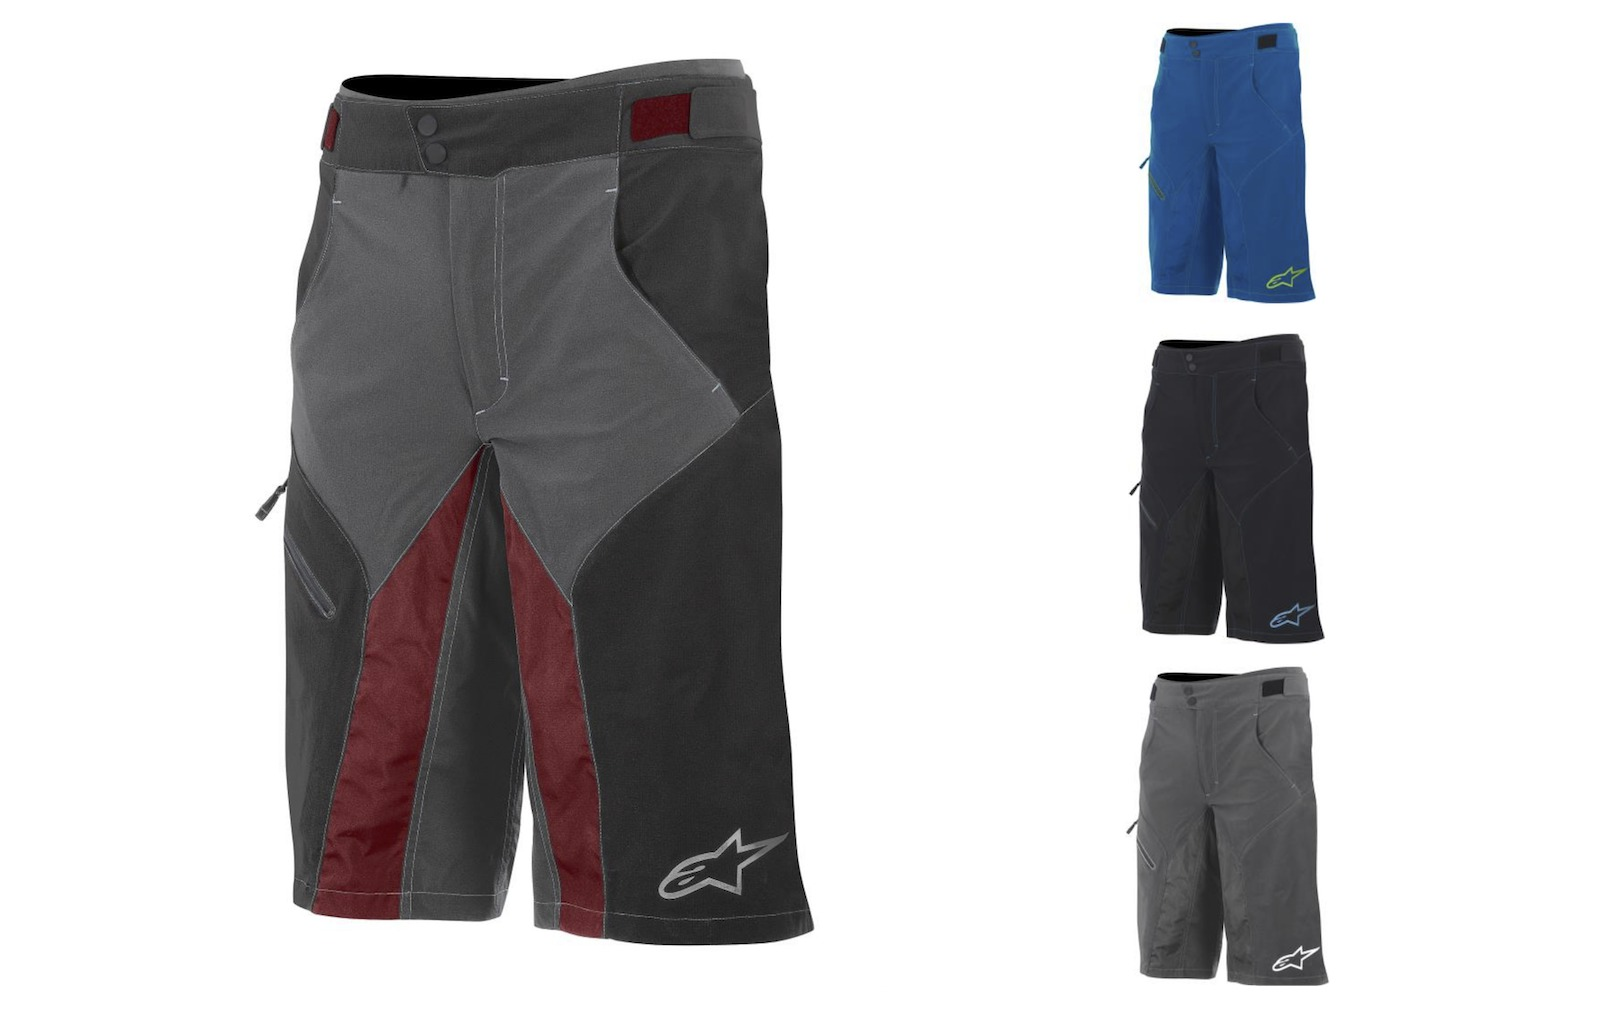 OUTRIDER WR SHORTS